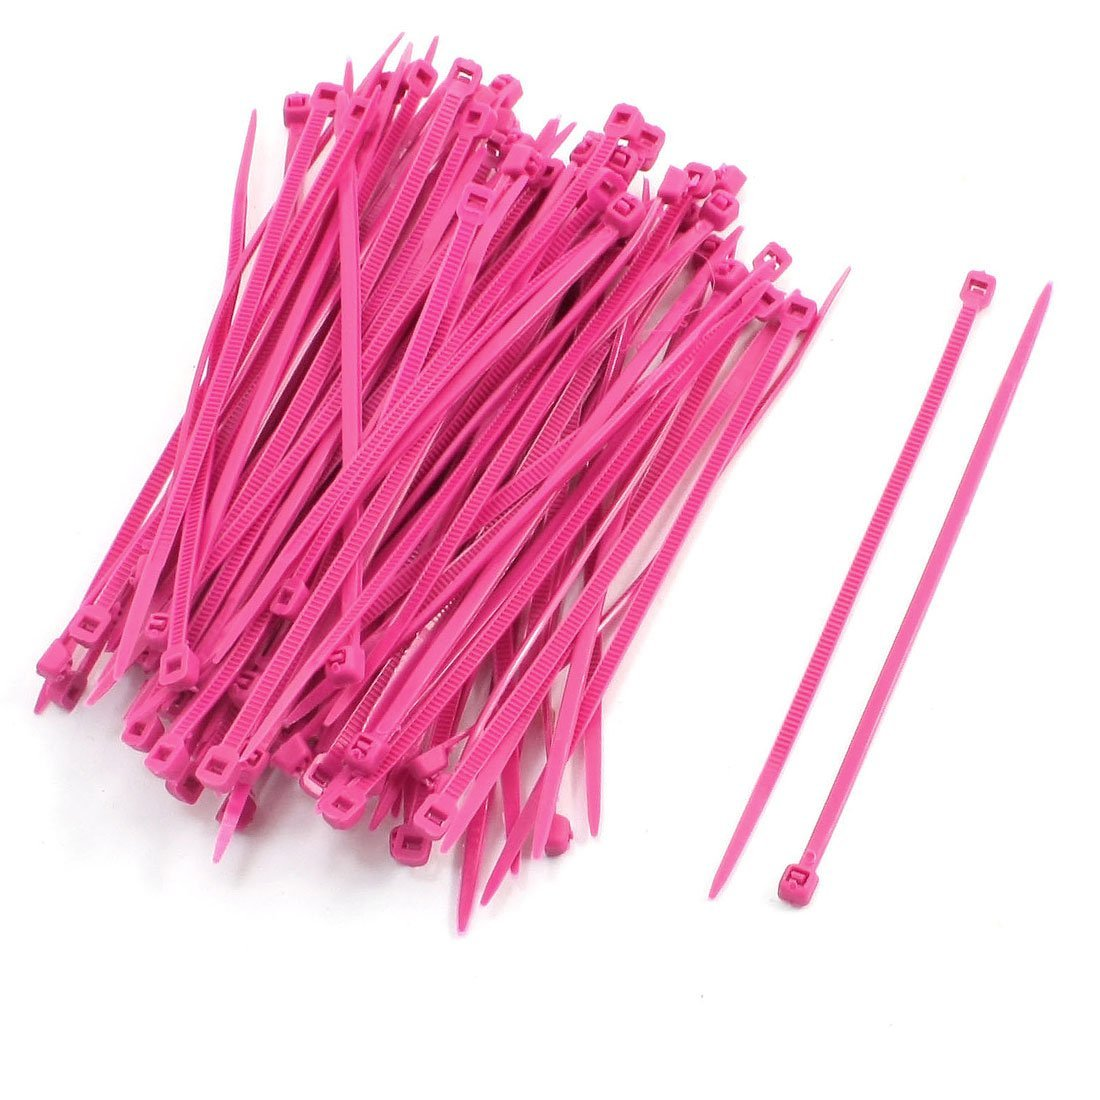 Ltd // Uxcell a13092700ux0100 Uxcell Plastic Self-locking Teeth Marker Label Cable Ties 100Pcs Magenta Dragonmarts Co